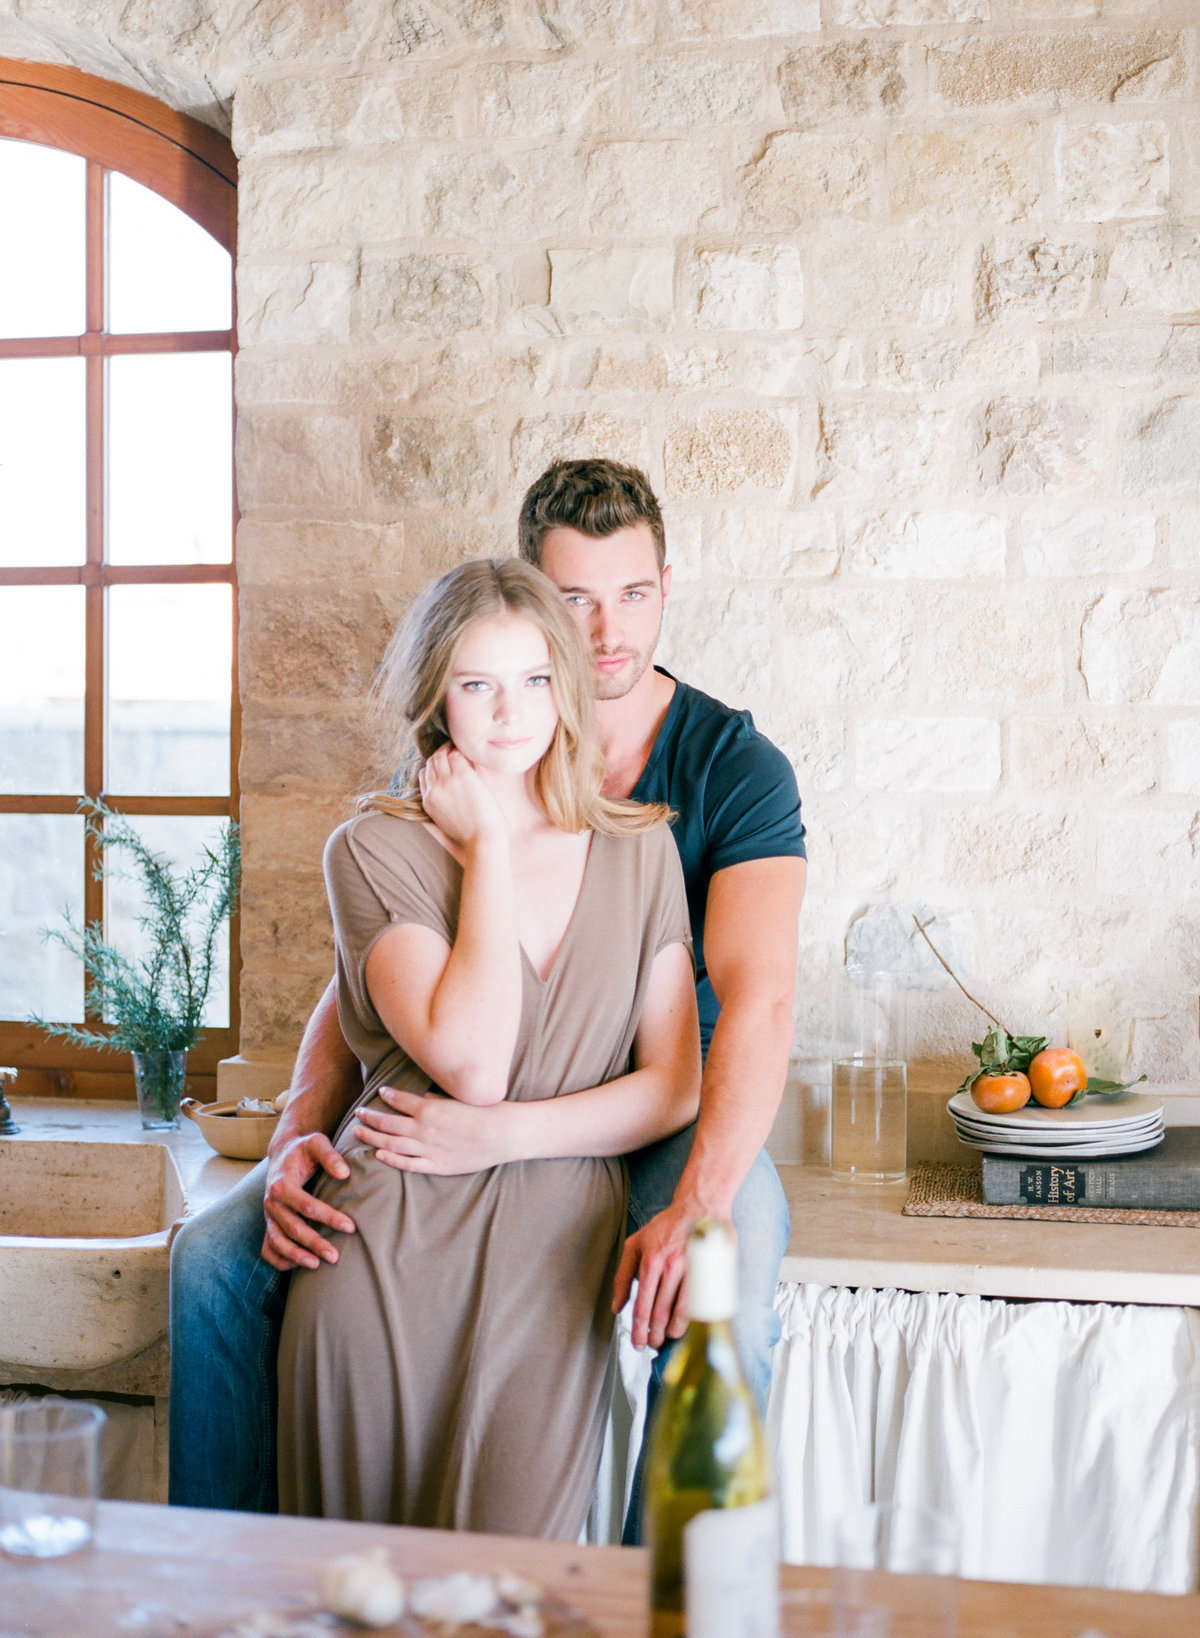 California Kitchen Engagement Session